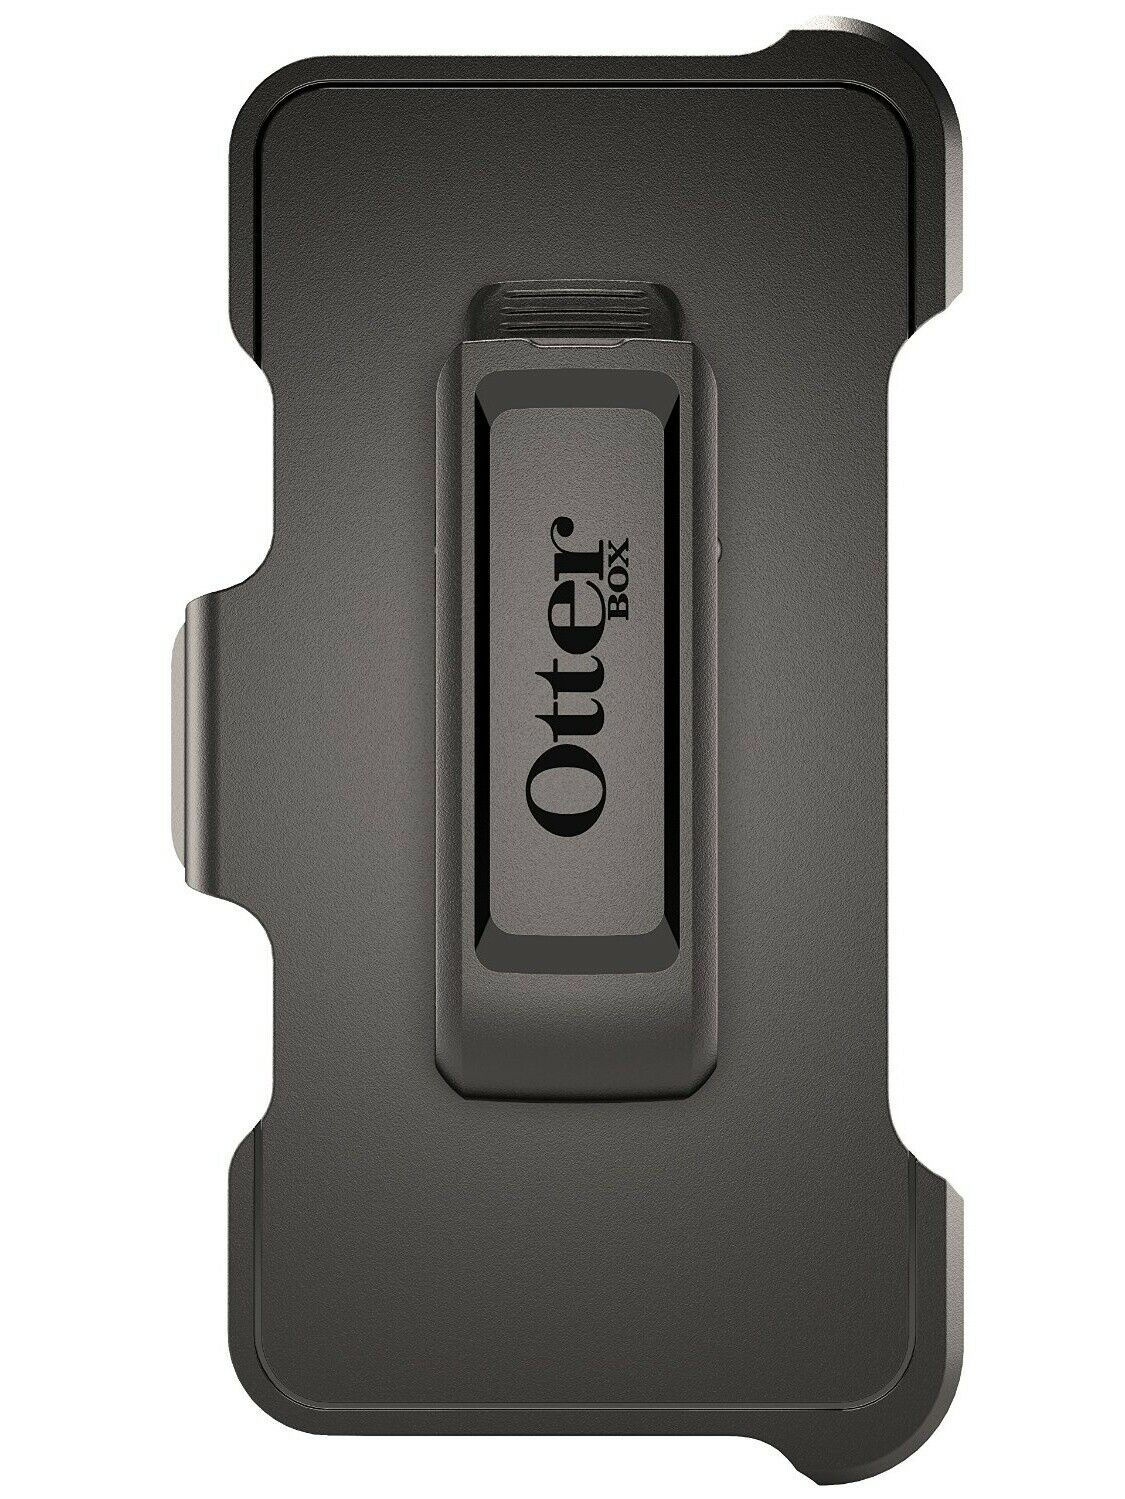 Authentic OtterBox Defender Case/Holster for iPhone 6/6s NFL